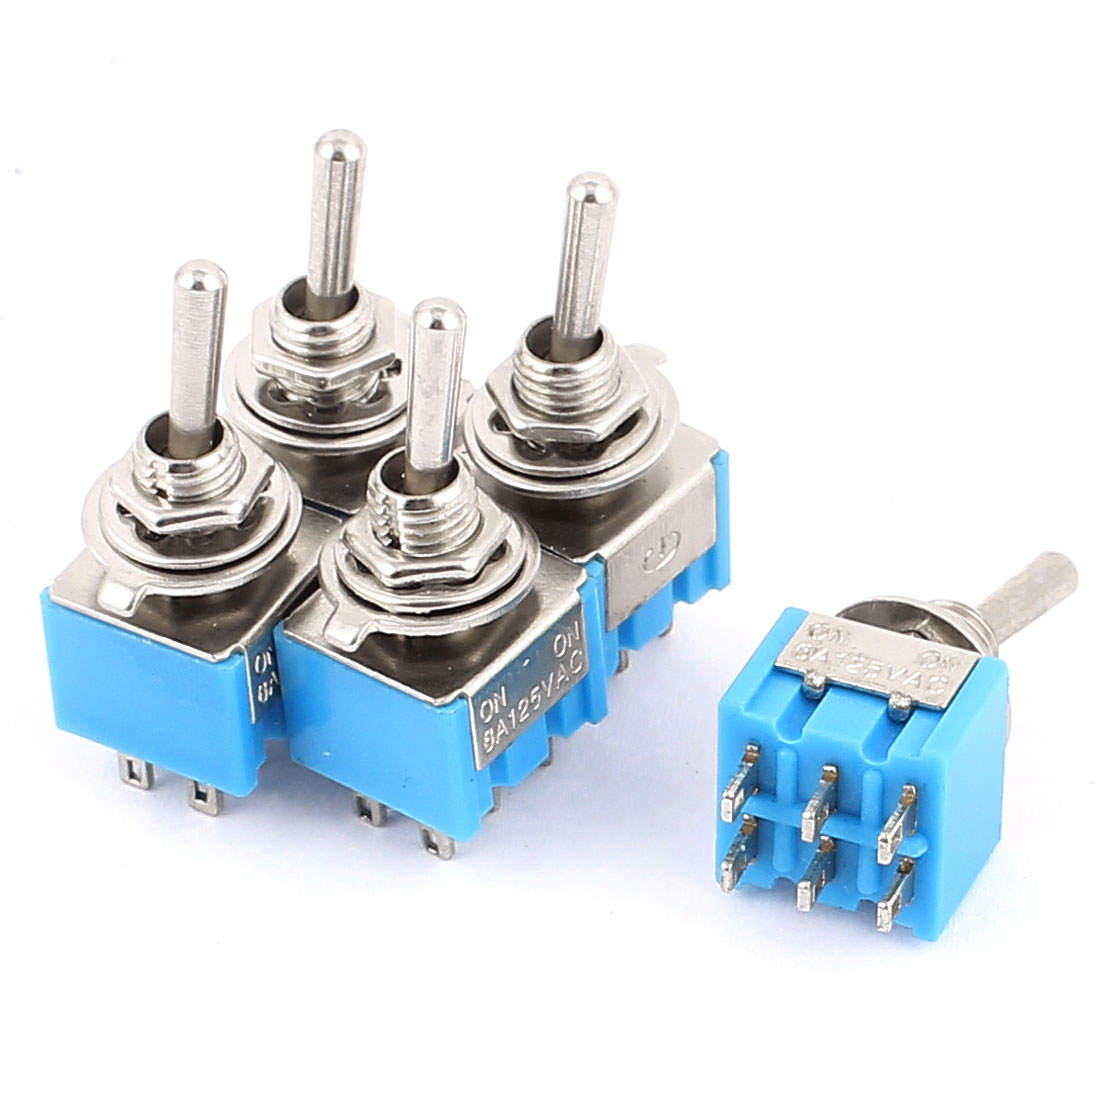 5 Pcs AC125V 6A DPDT ON-ON 2 Positions 6 Terminals Latching Miniature Toggle Switch